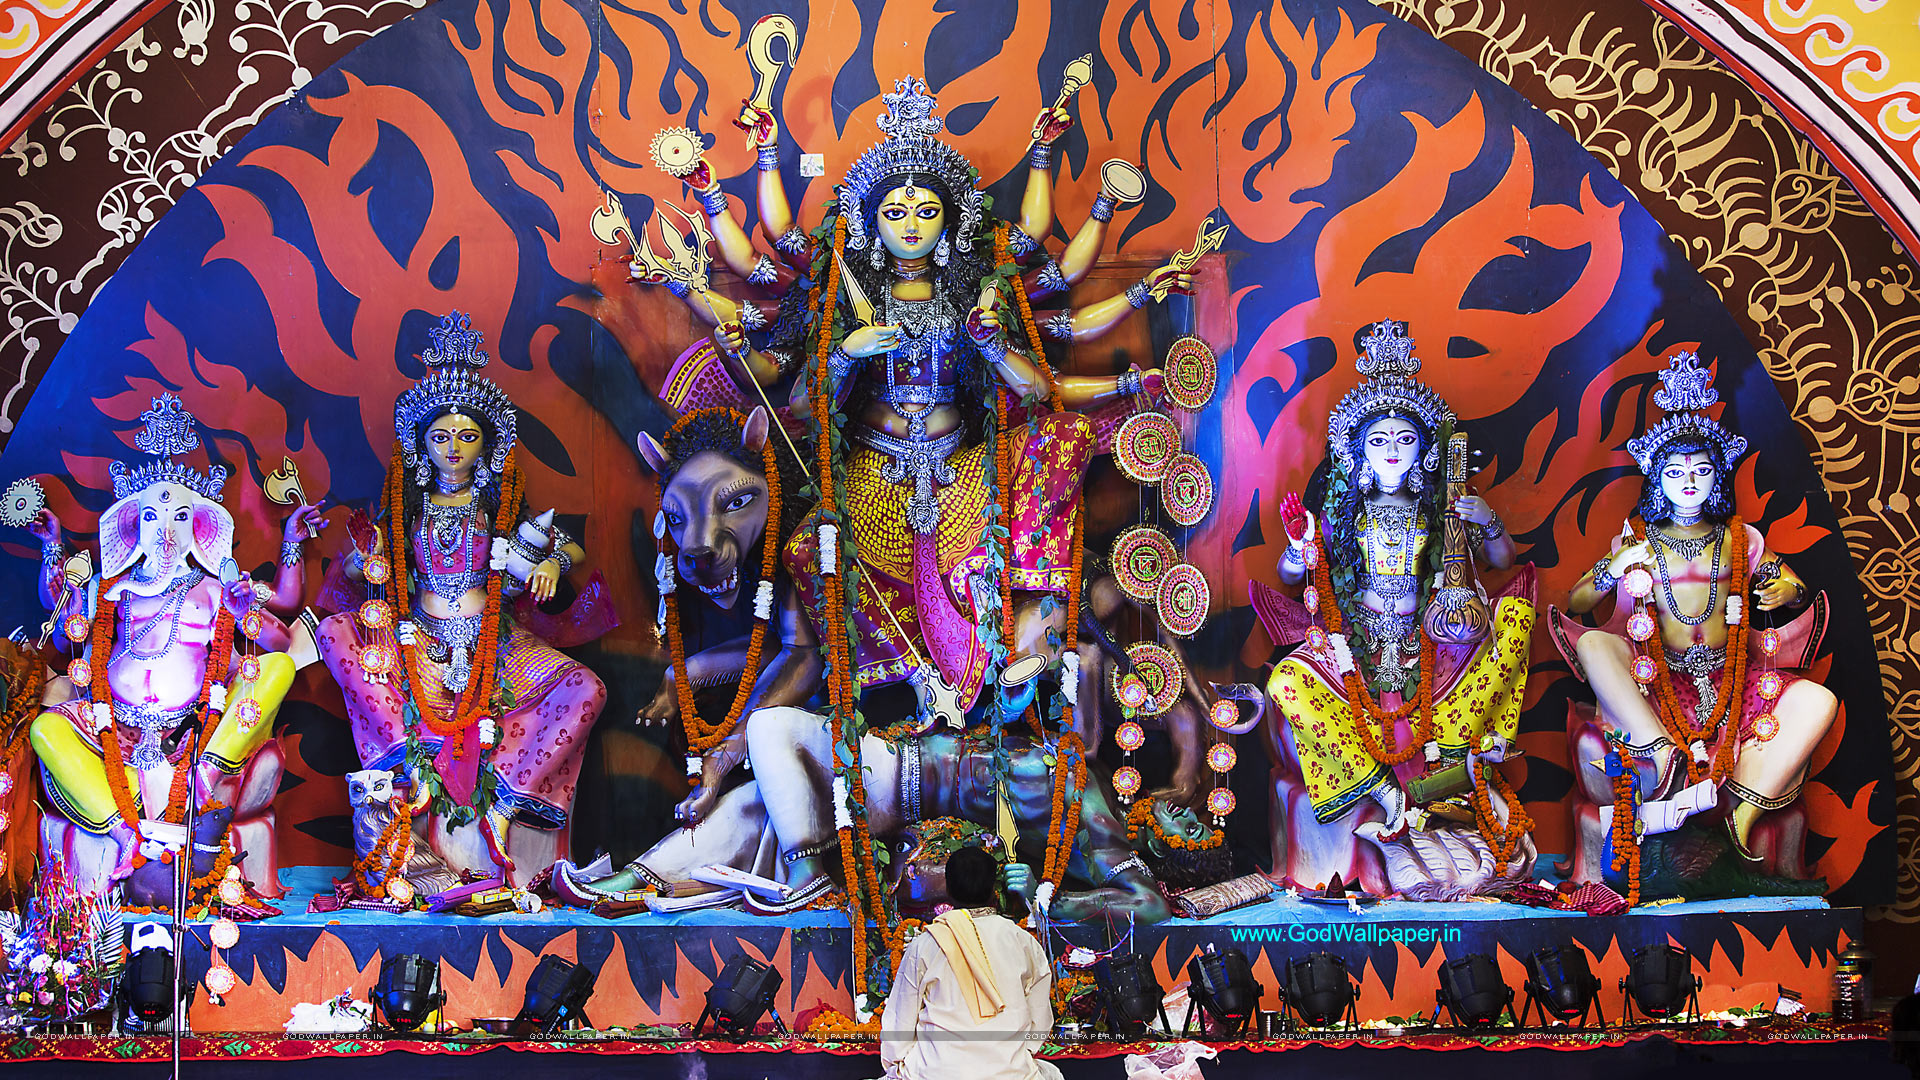 Durga Puja Hd Wallpaper: Best Durga Puja HD Wallpapers For Desktop Download